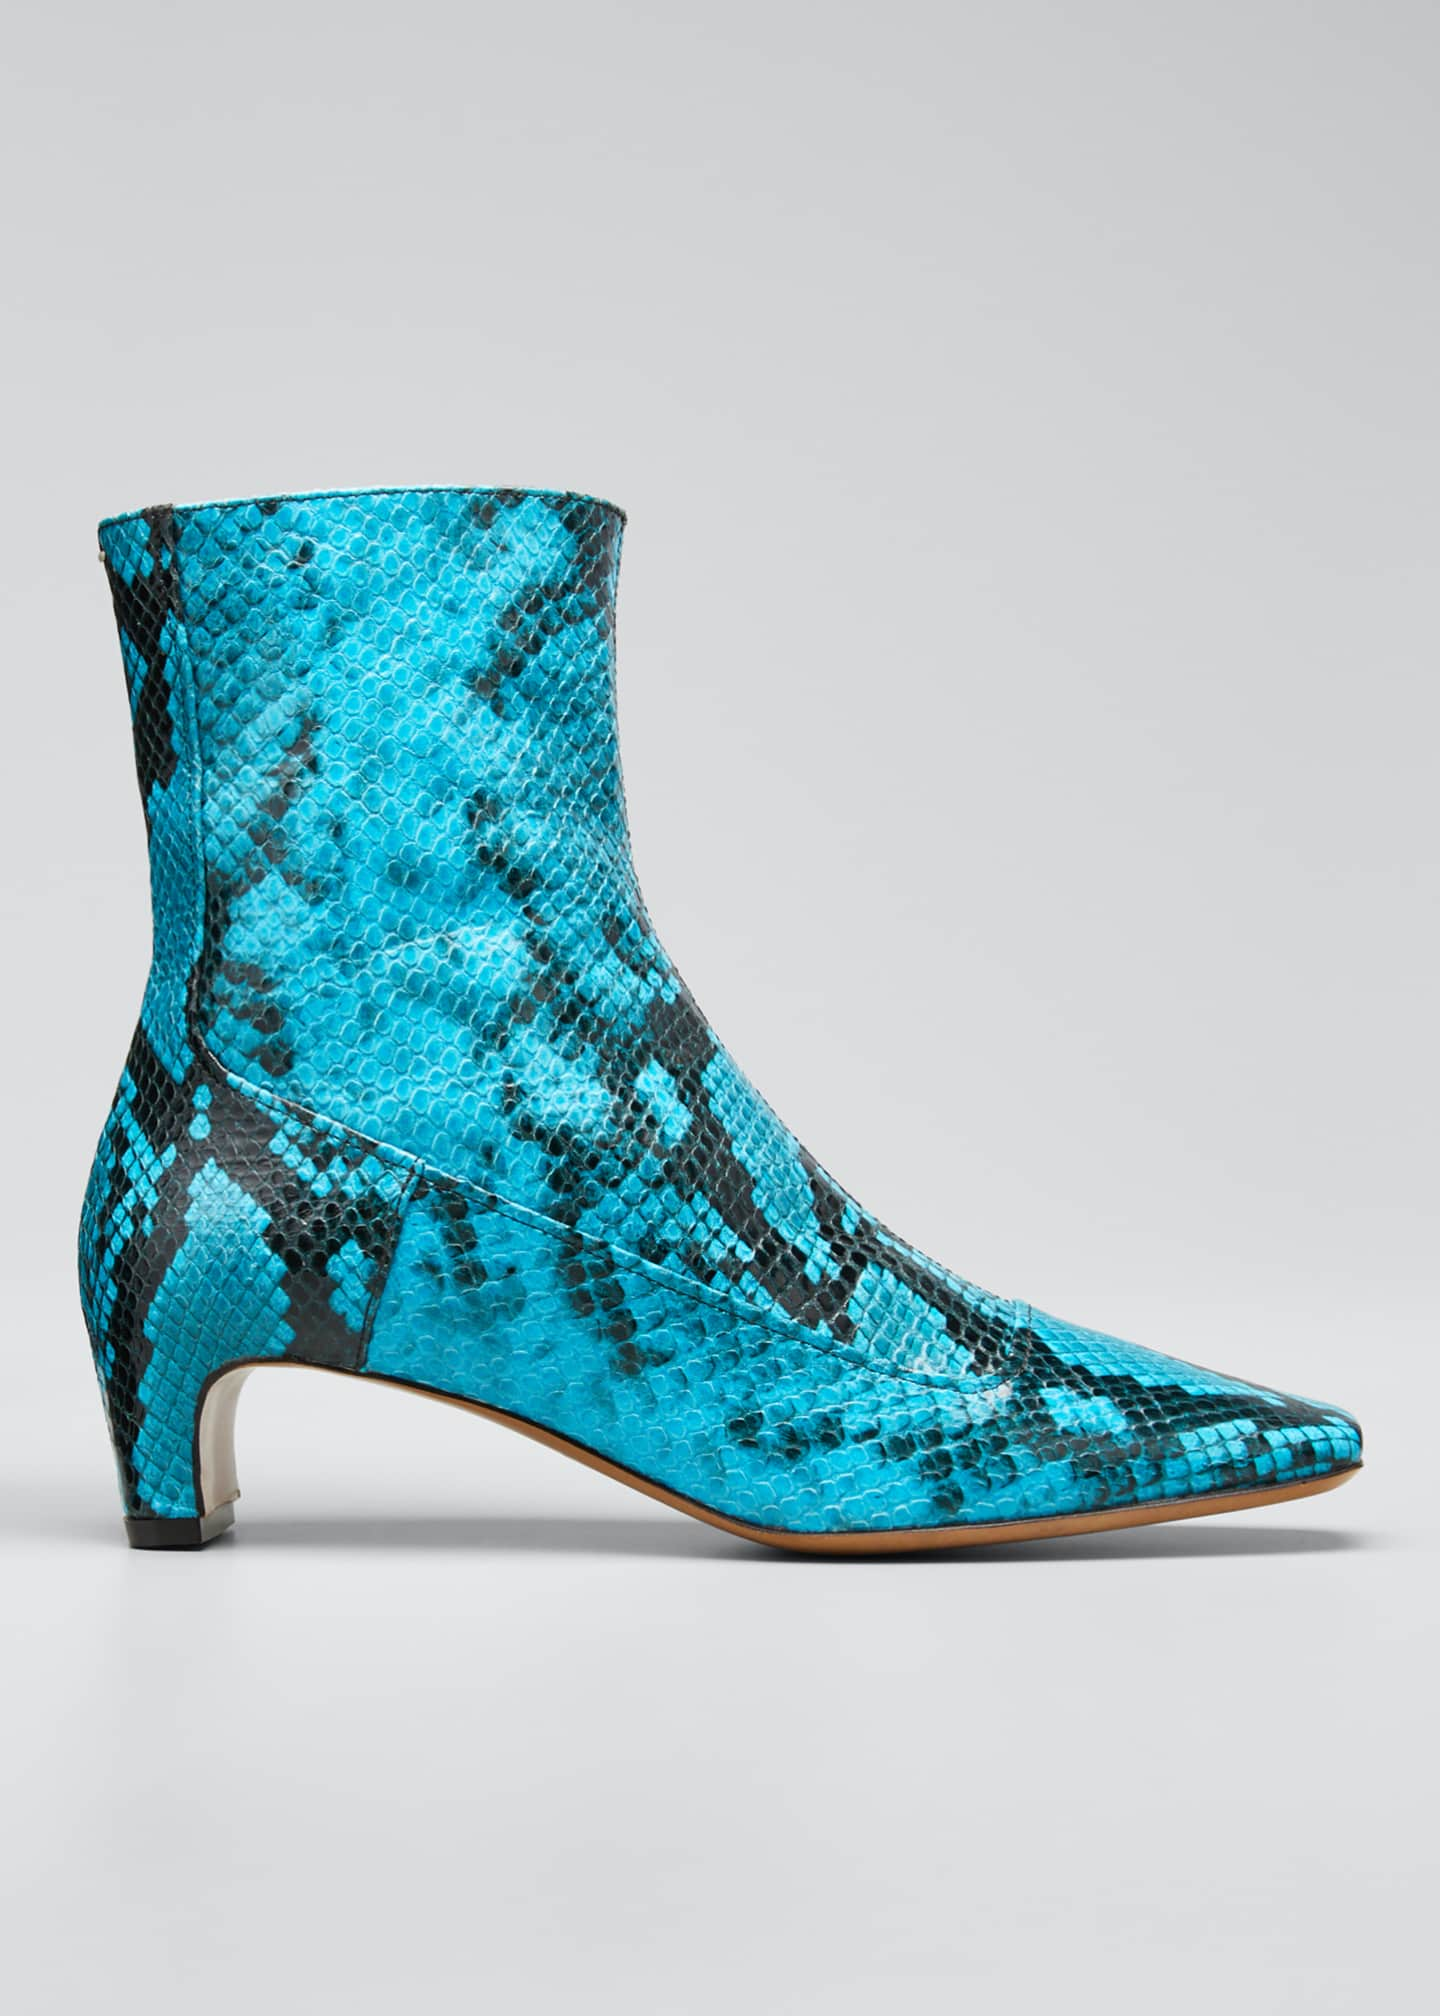 Maison Margiela Mick 50mm Python-Print Booties